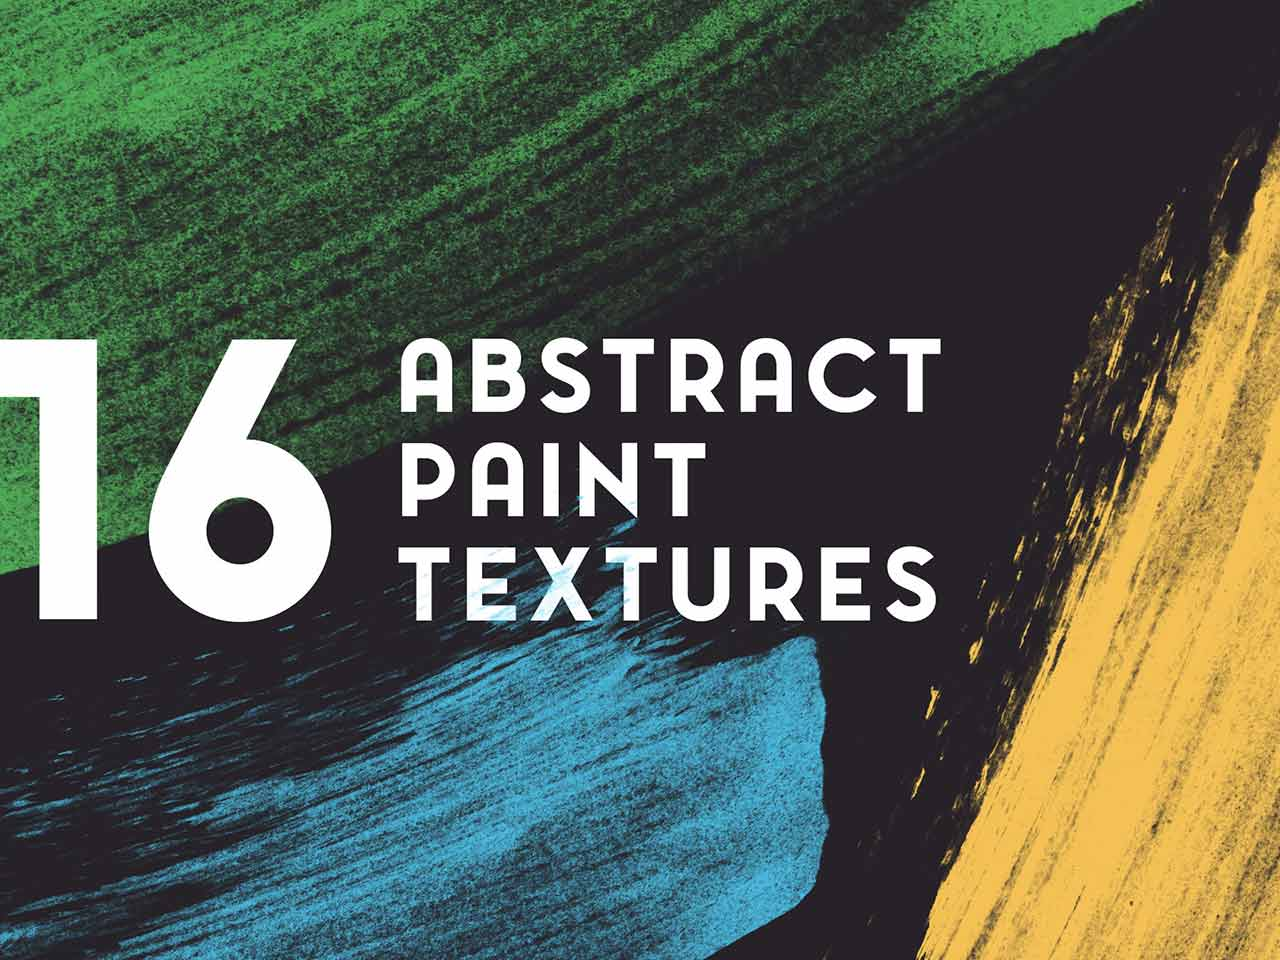 16 Abstract Paint Textures